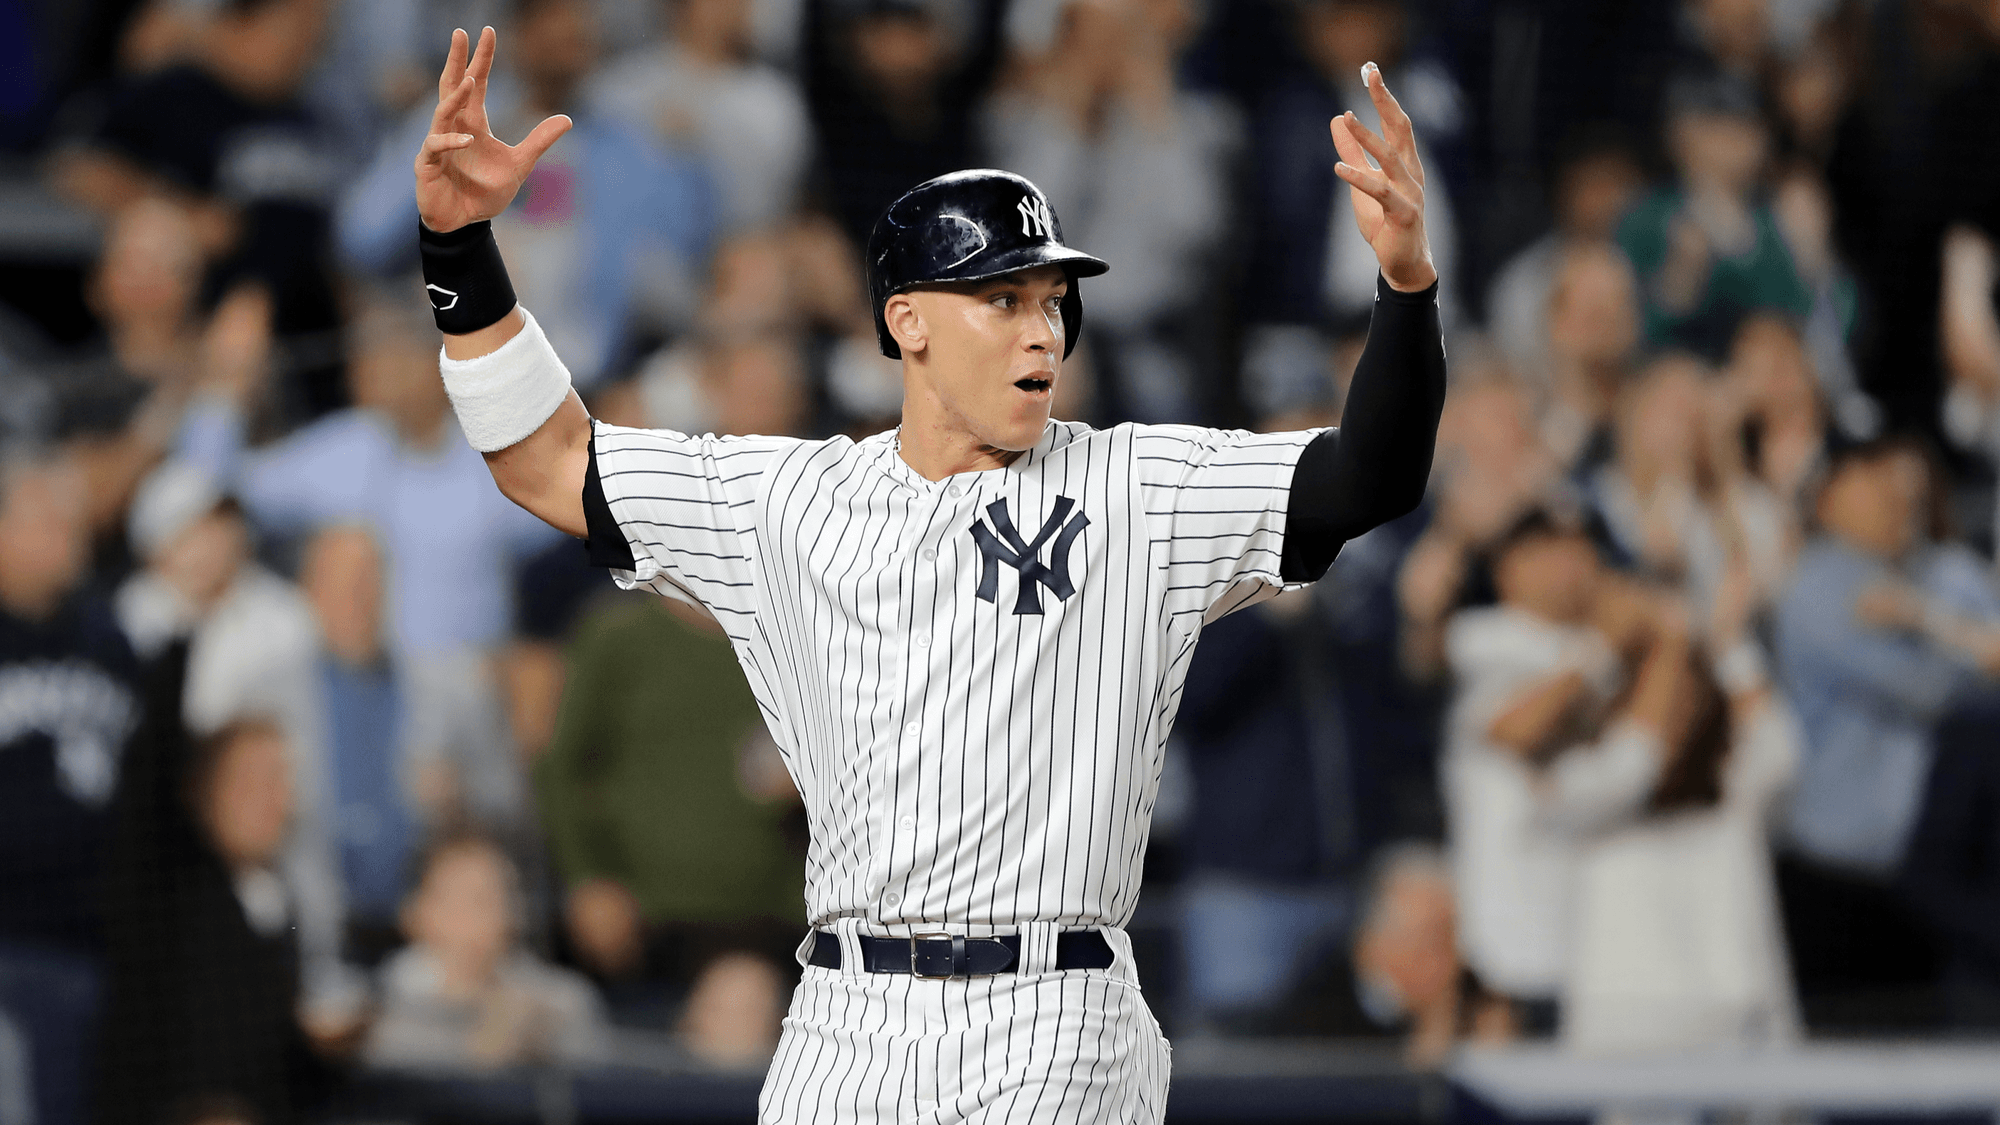 NEW YORK, NEW YORK – OCTOBER 03:  Aaron Judge #99 of the New York Yankees celebrates after scoring a run off of a double hit by Aaron Hicks #31 during the sixth inning against the Oakland Athletics in the American League Wild Card Game at Yankee Stadium on October 03, 2018 in the Bronx borough of New York City. (Photo by Elsa/Getty Images)